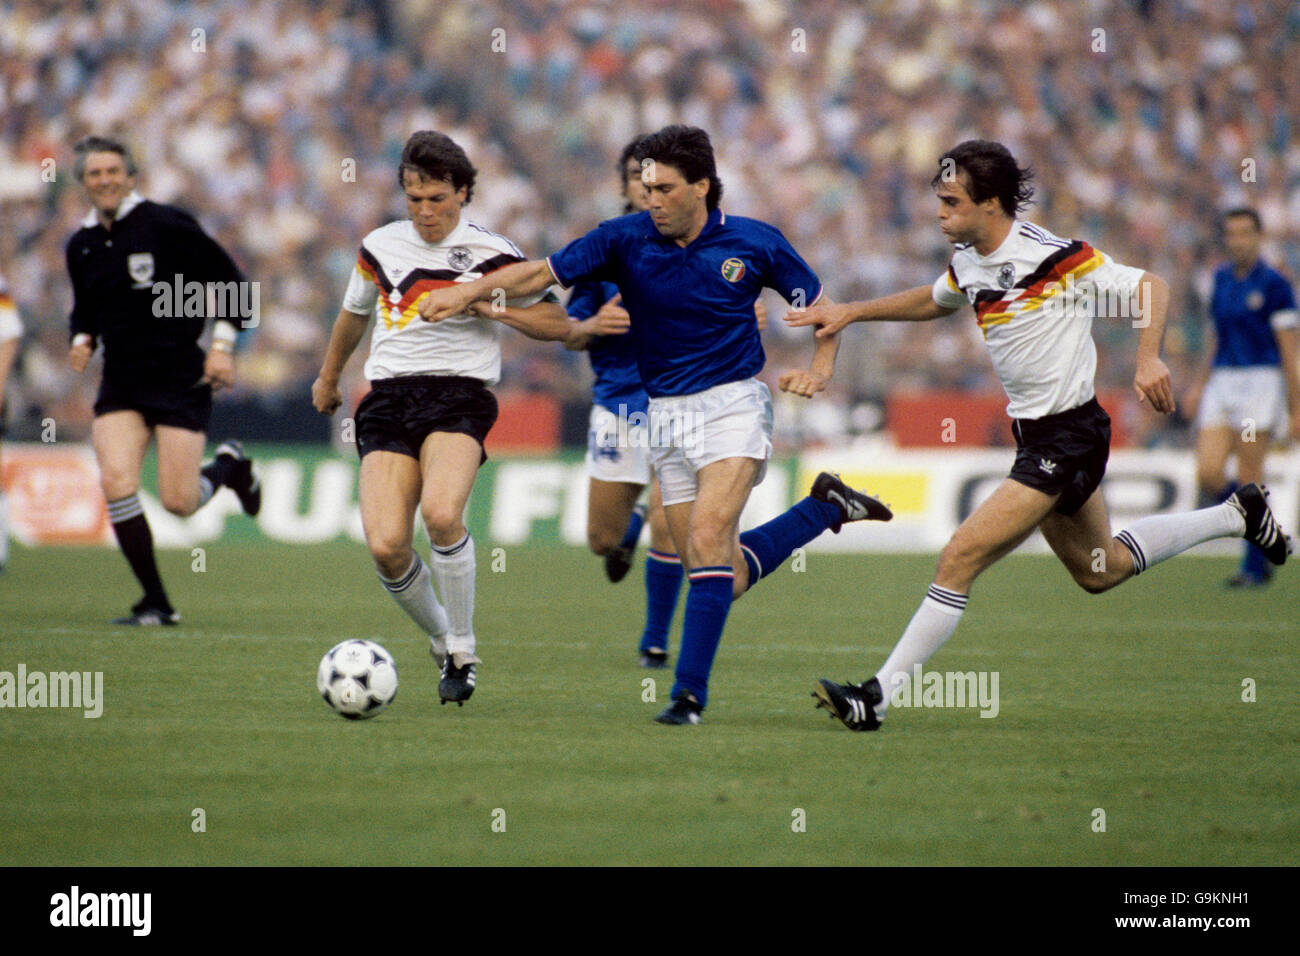 Italy's Carlo Ancelotti (c) tries to burst between West Germany's Lothar Matthaus (l) and Thomas Berthold (r) Stock Photo